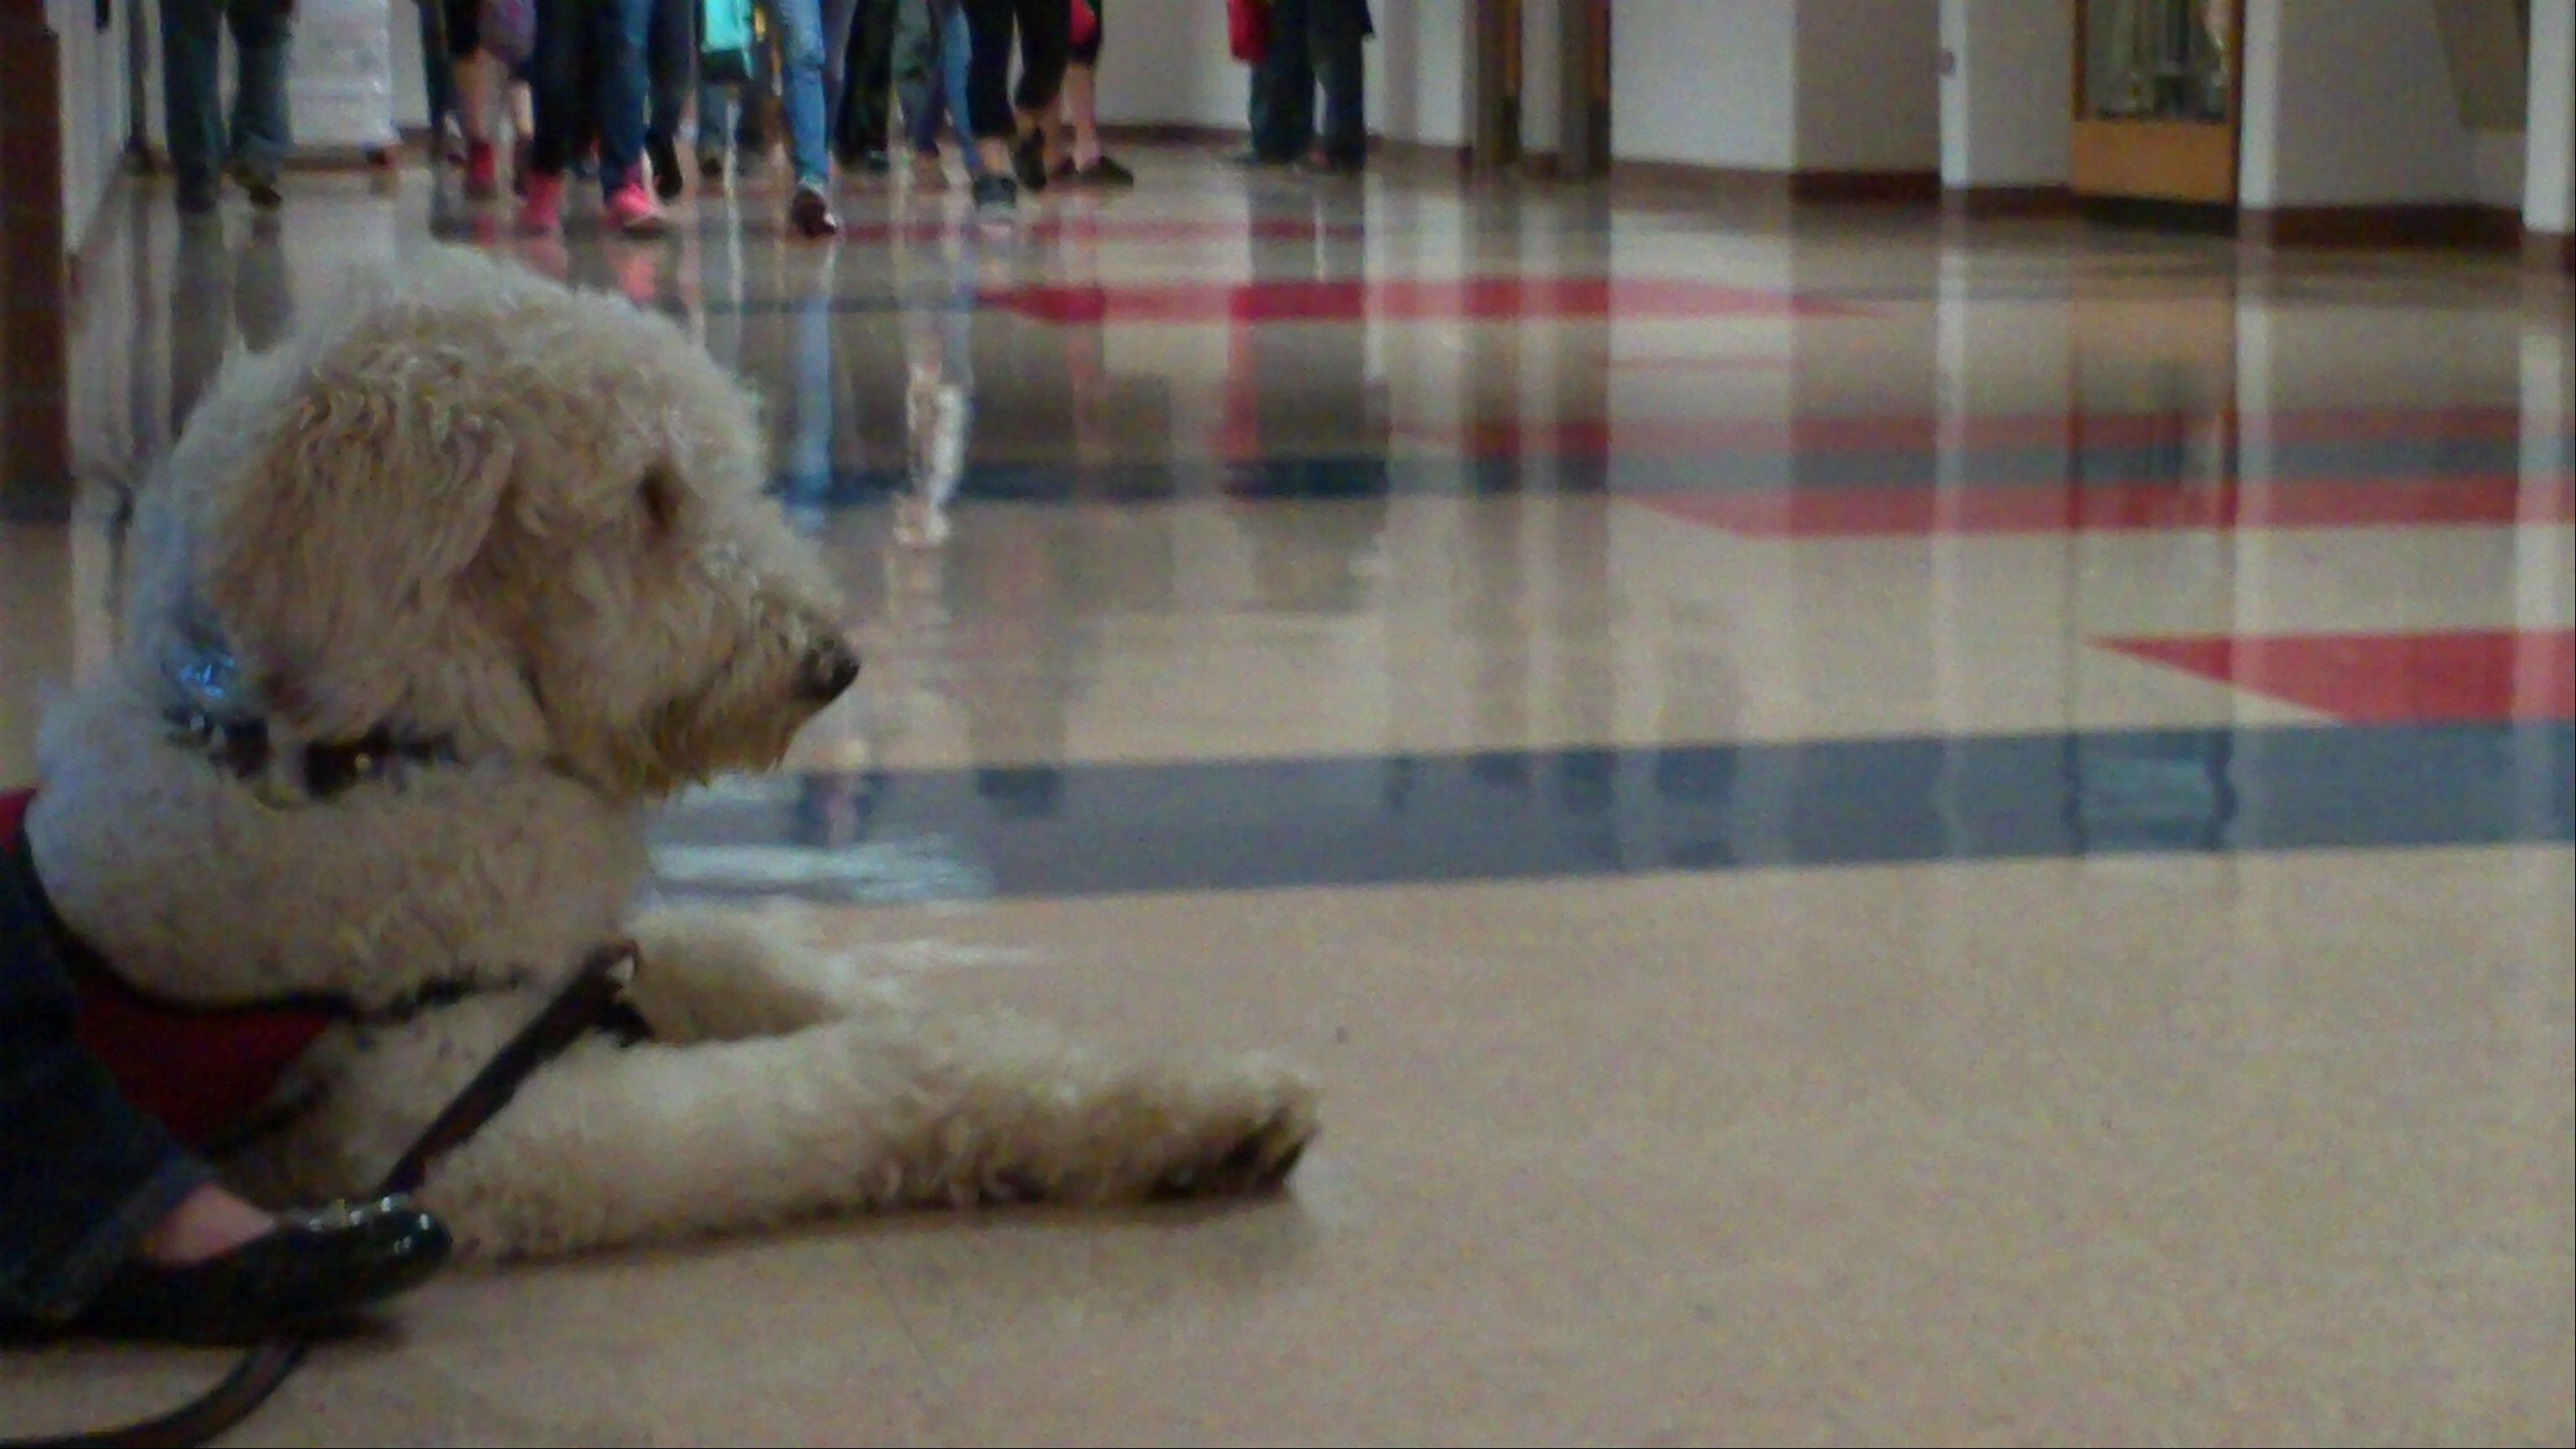 Service dog Puzzle experienced a busy school day at South Middle School, part of his training by Arlington Heights resident Debbie Kubitz. Puzzle soon will move to Ohio to live with an 8-year-old Ohio boy who suffers from numerous health problems.